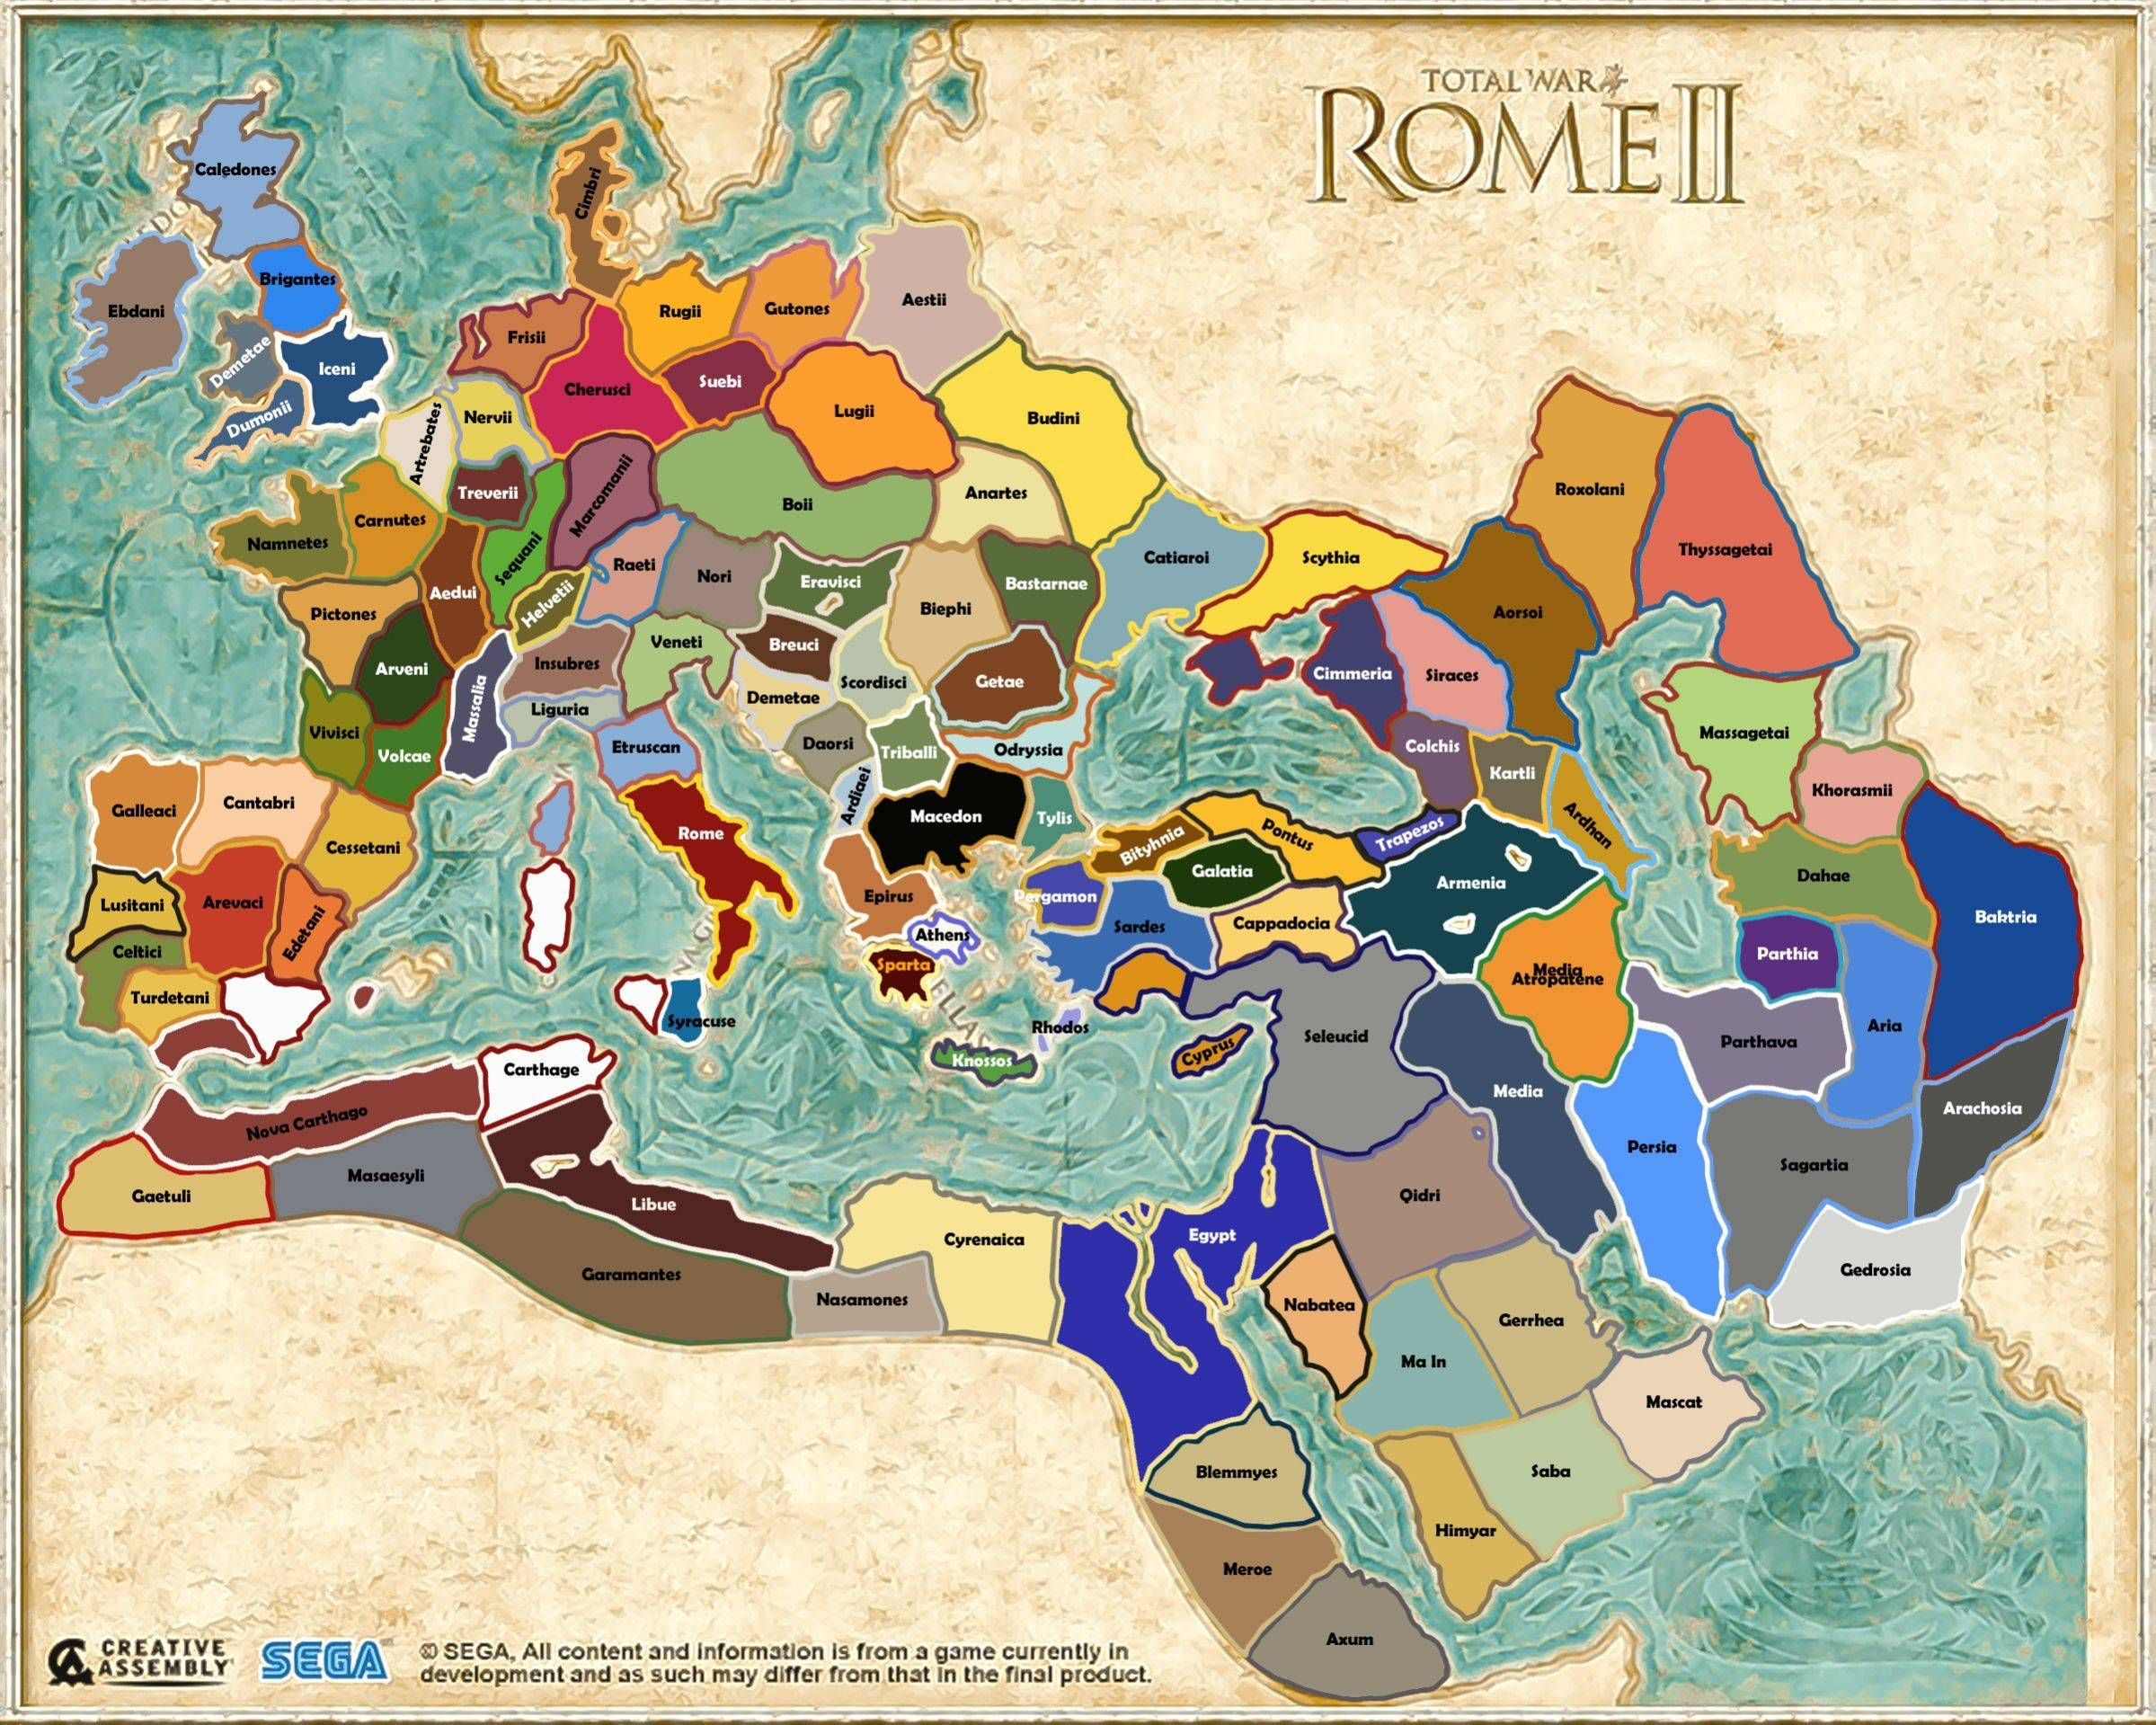 Rome 2 Map rome total war 2 map   Google Search | rome 2 total war | Total  Rome 2 Map